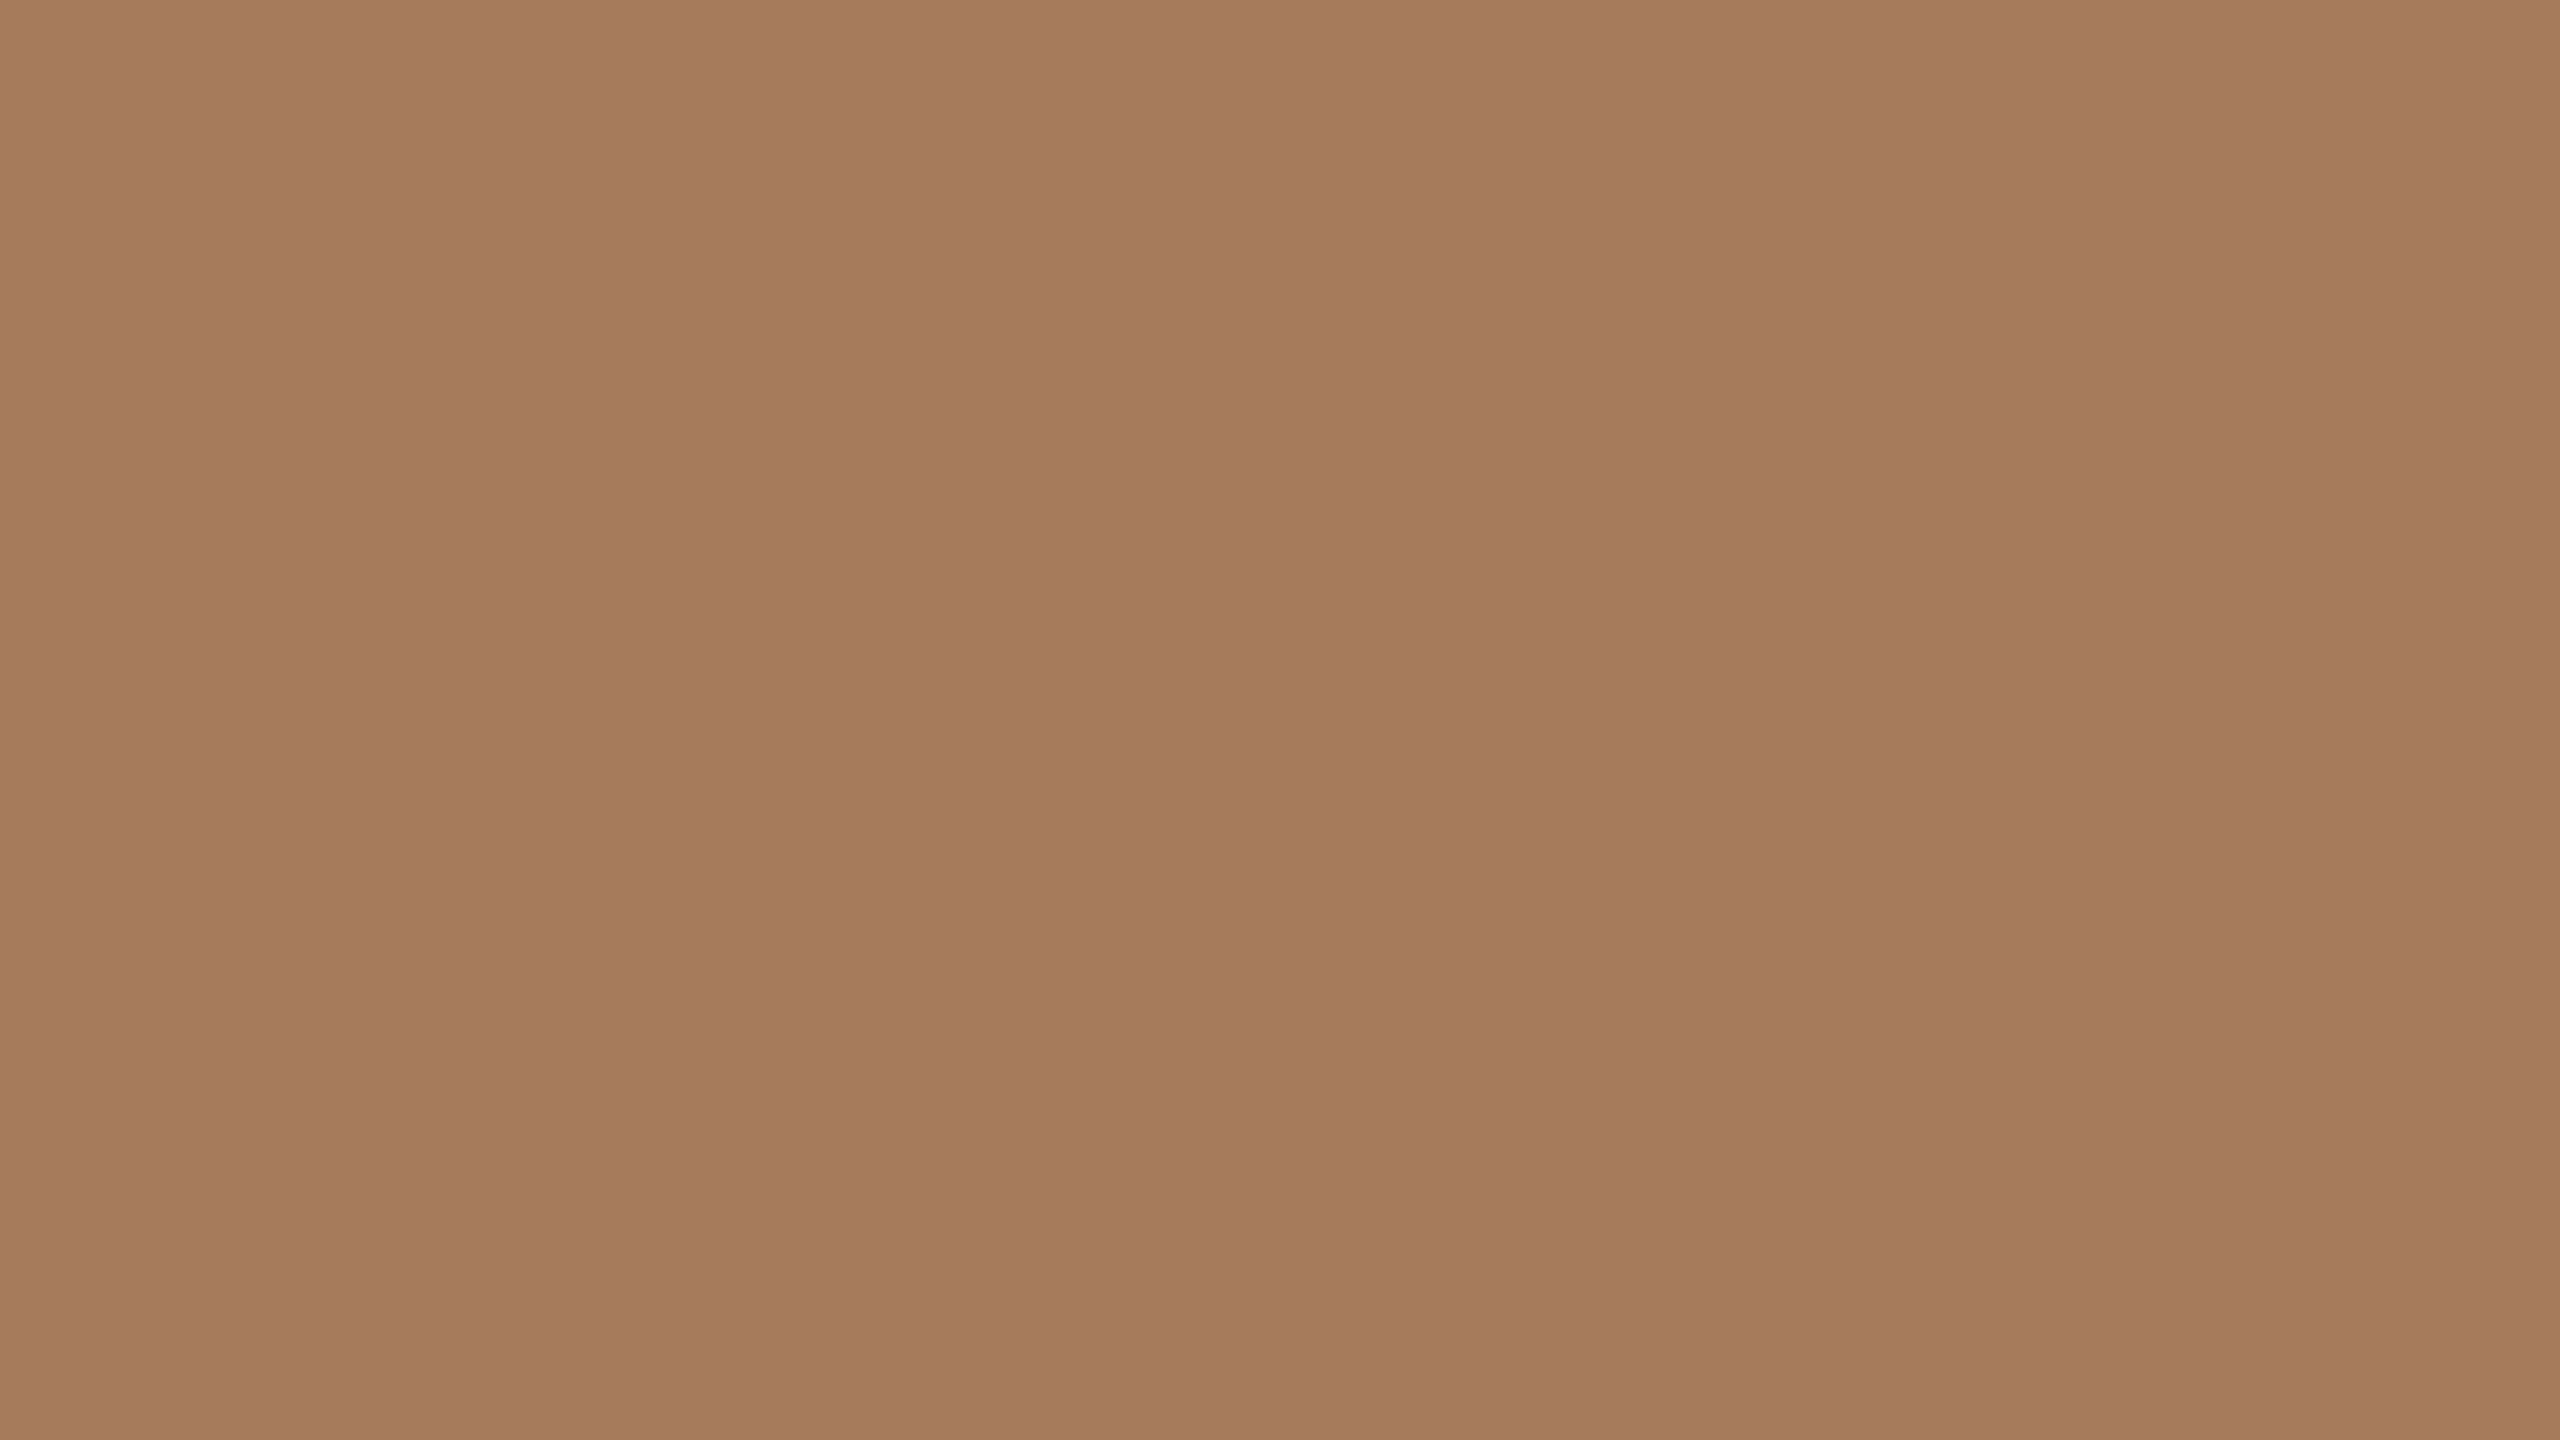 2560x1440 French Beige Solid Color Background